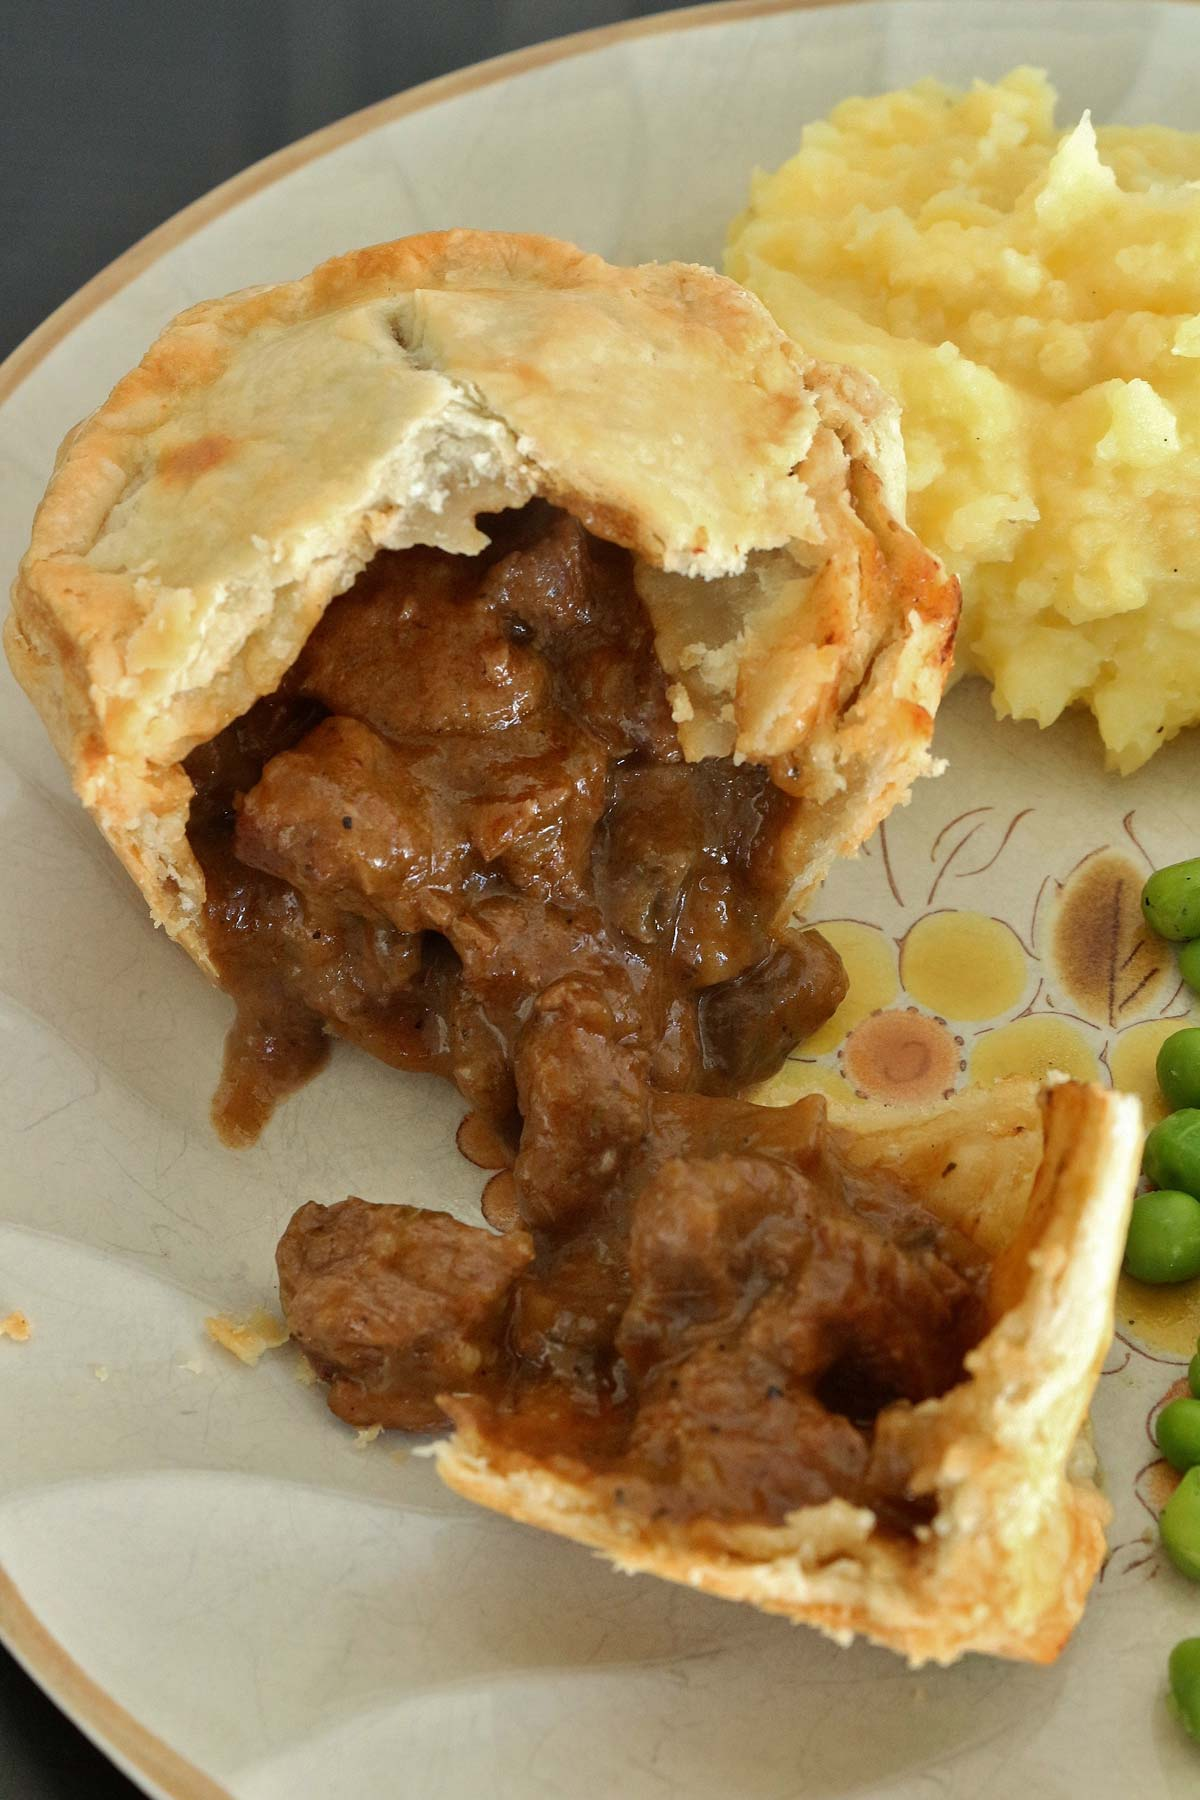 A small pie broken open on a plate with beef and mushroom filling spilling out.